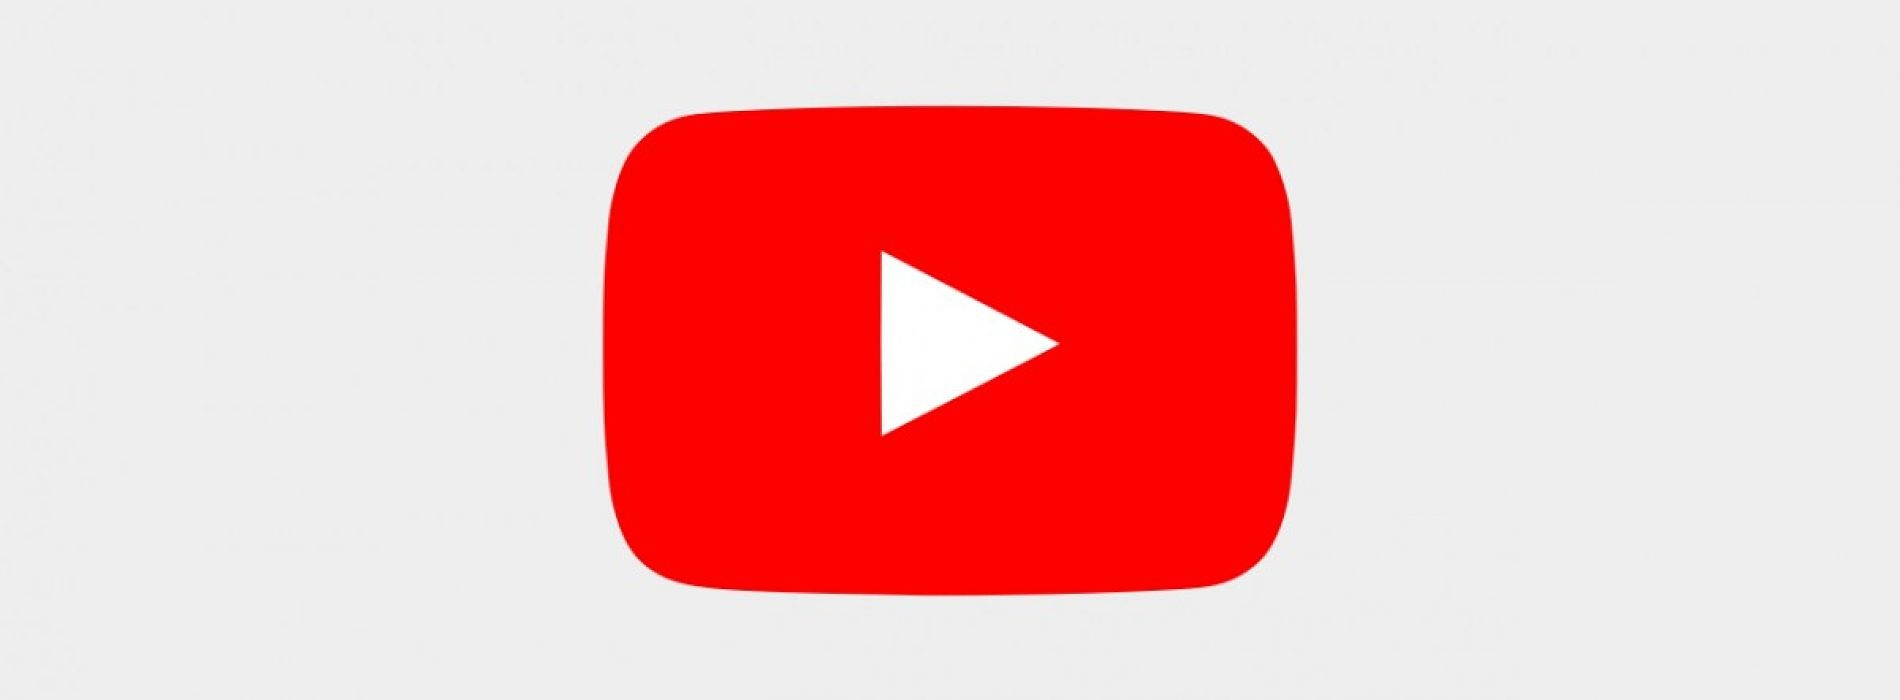 YouTube Premieres adds more excitement with trailers, live redirects, and countdown themes